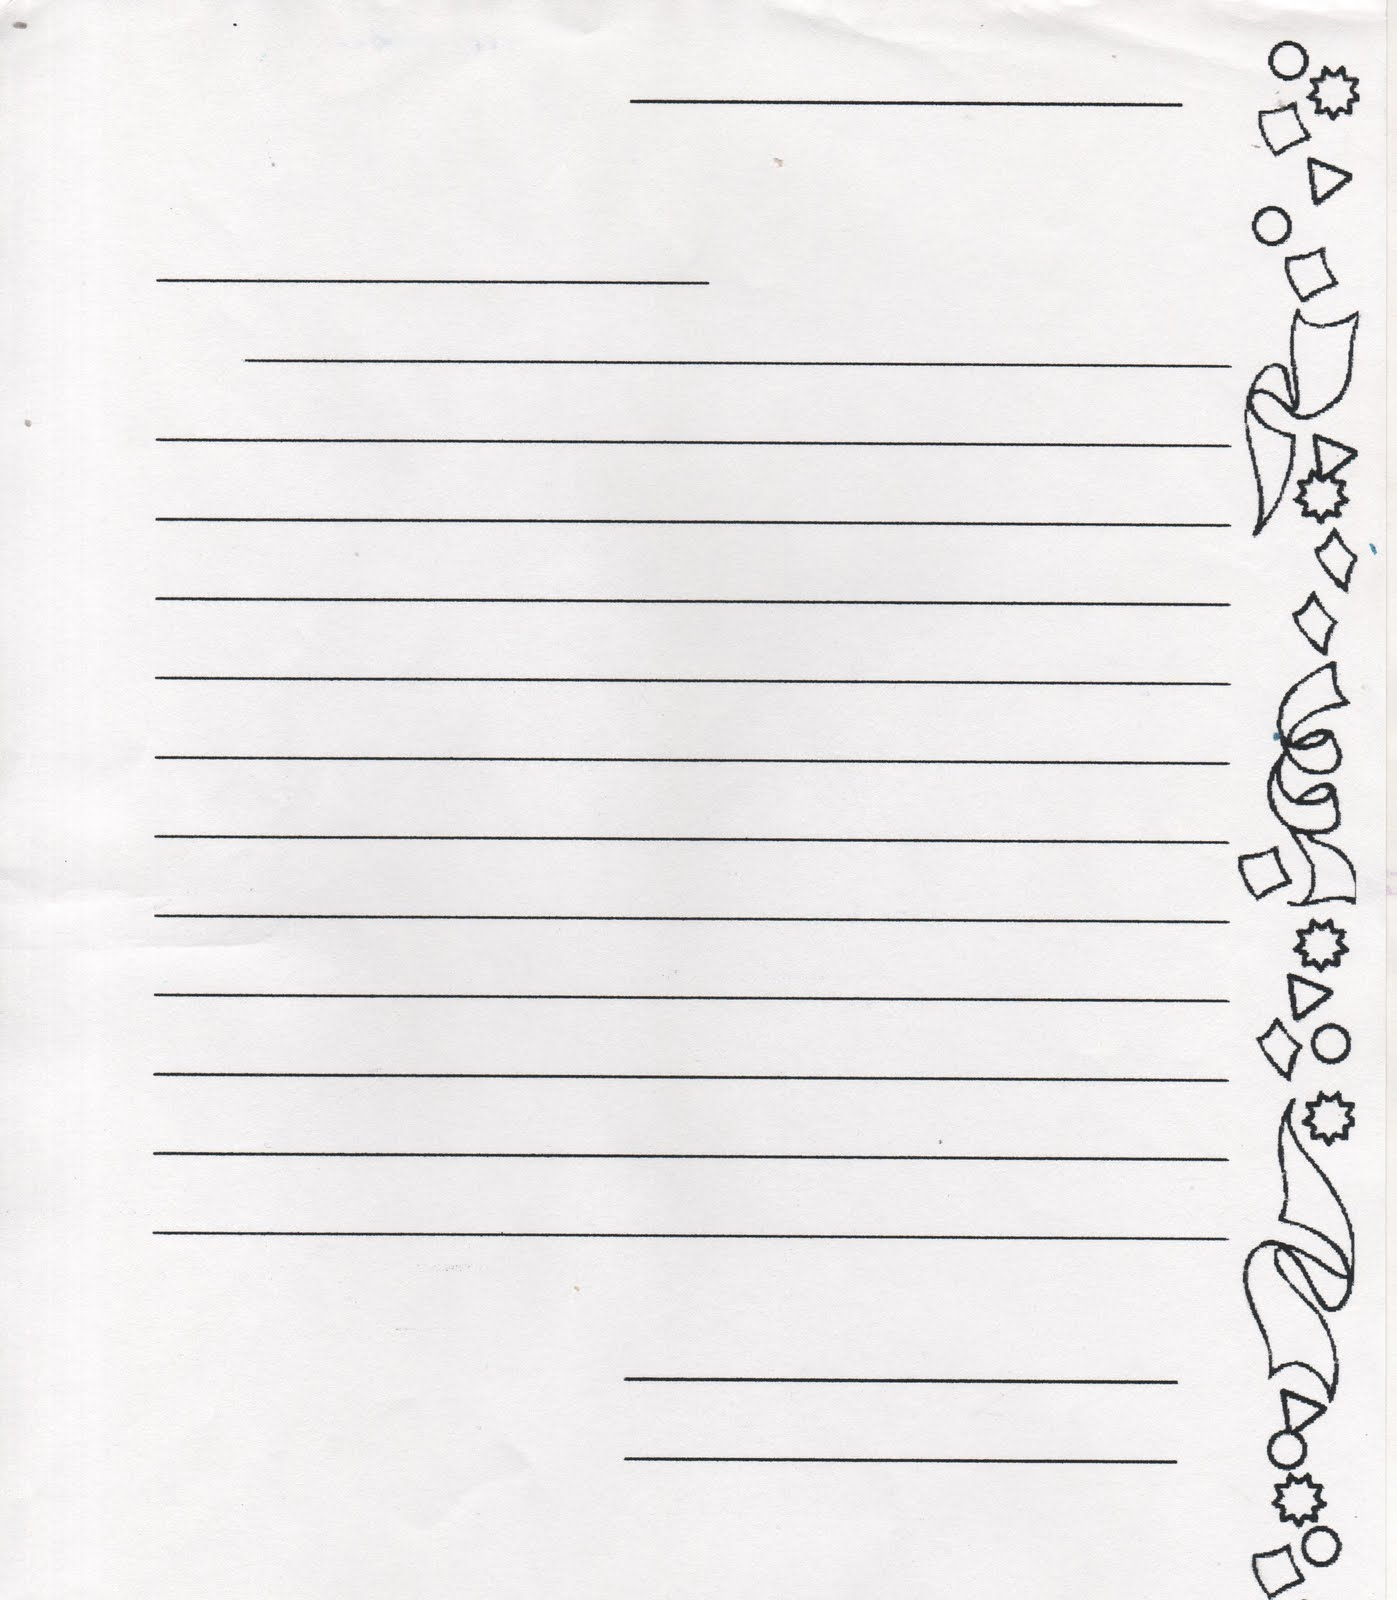 Sample Pen Pal Letter For Elementary Students